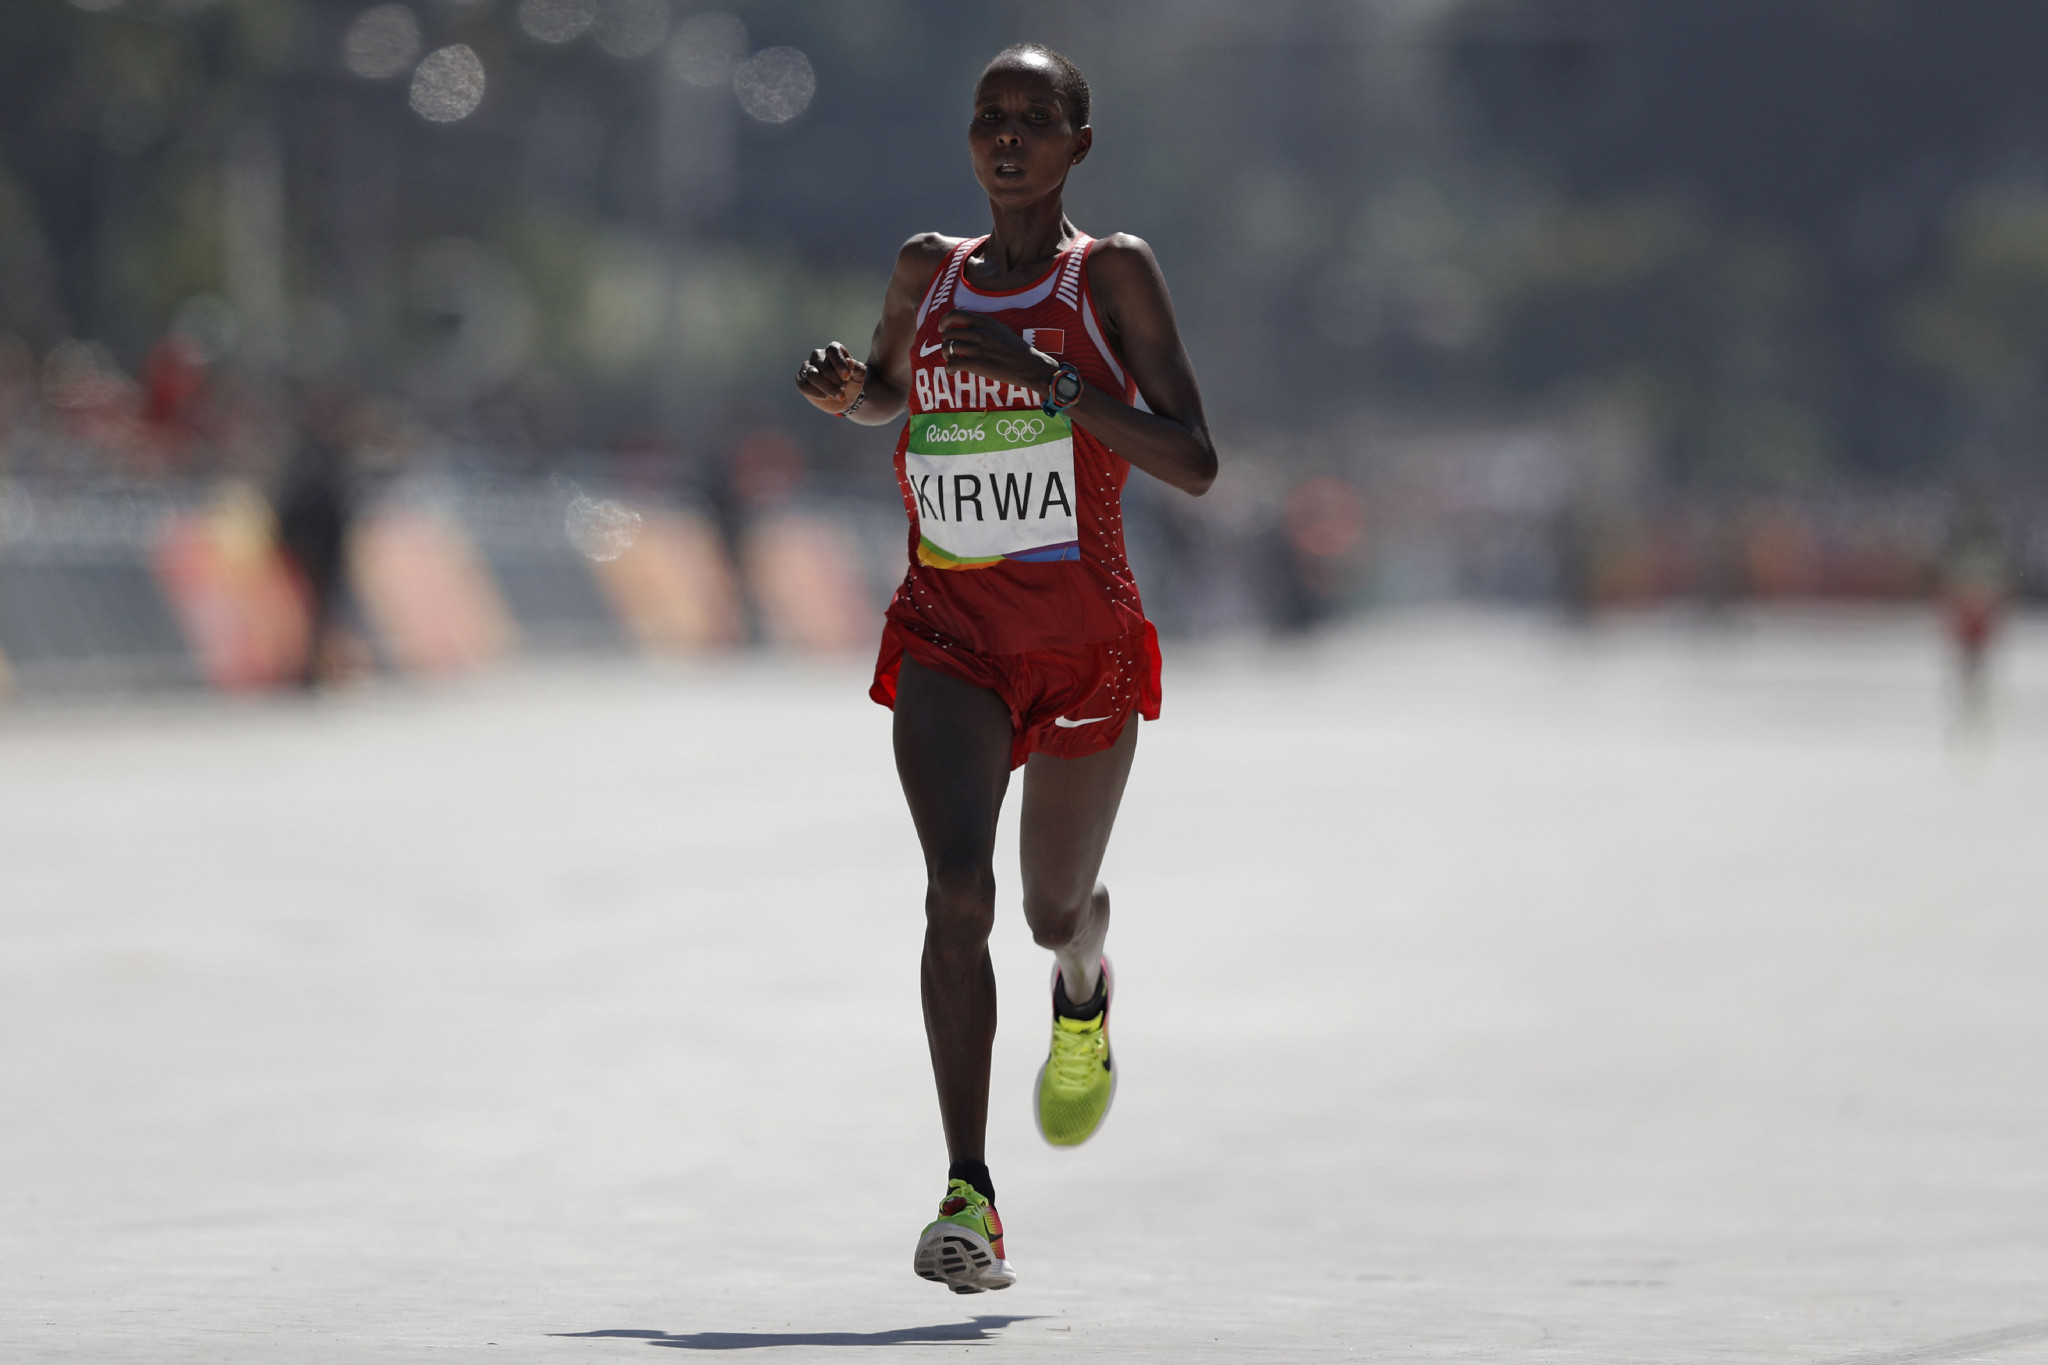 Olympic marathon silver medallist facing four-year ban after testing positive for EPO